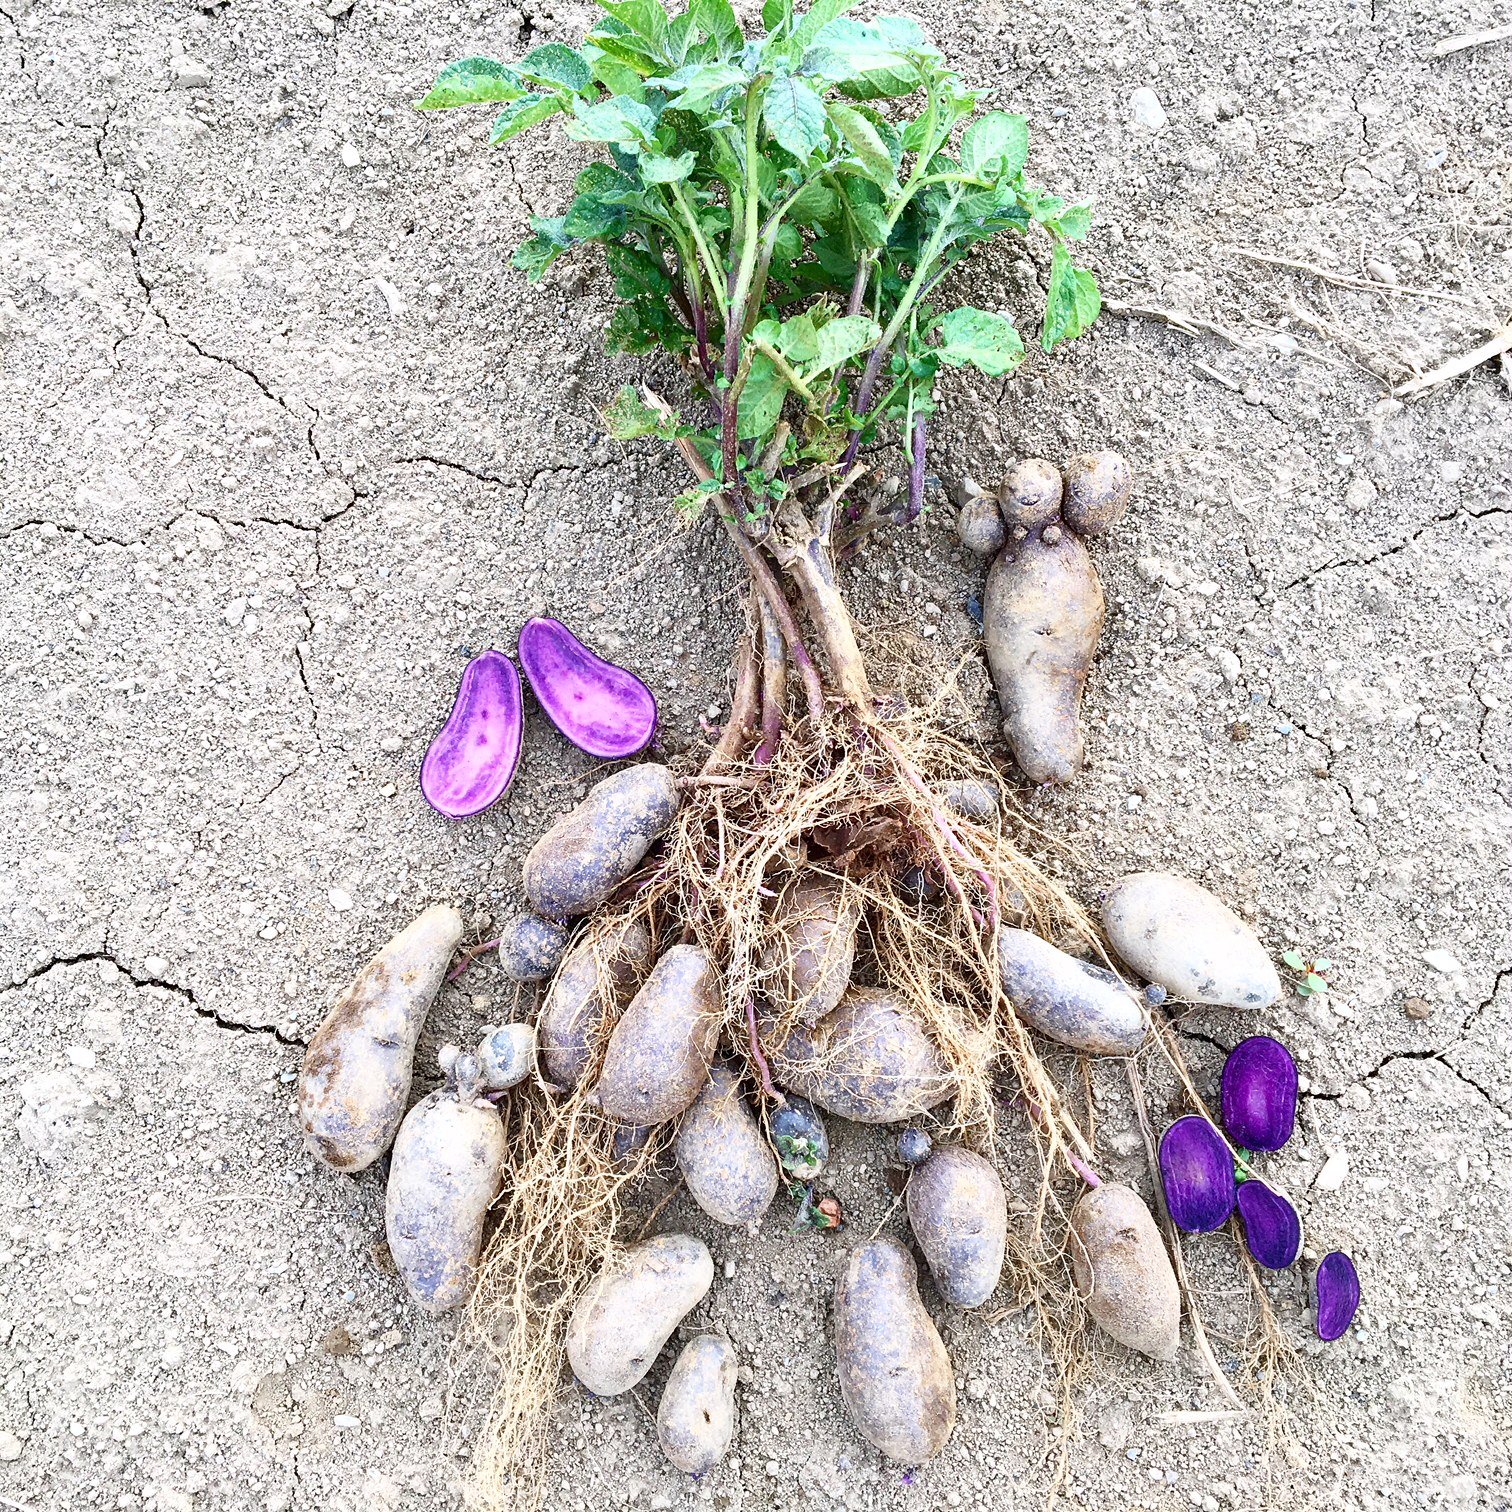 Purple fingerling potatoes straight from the plant!